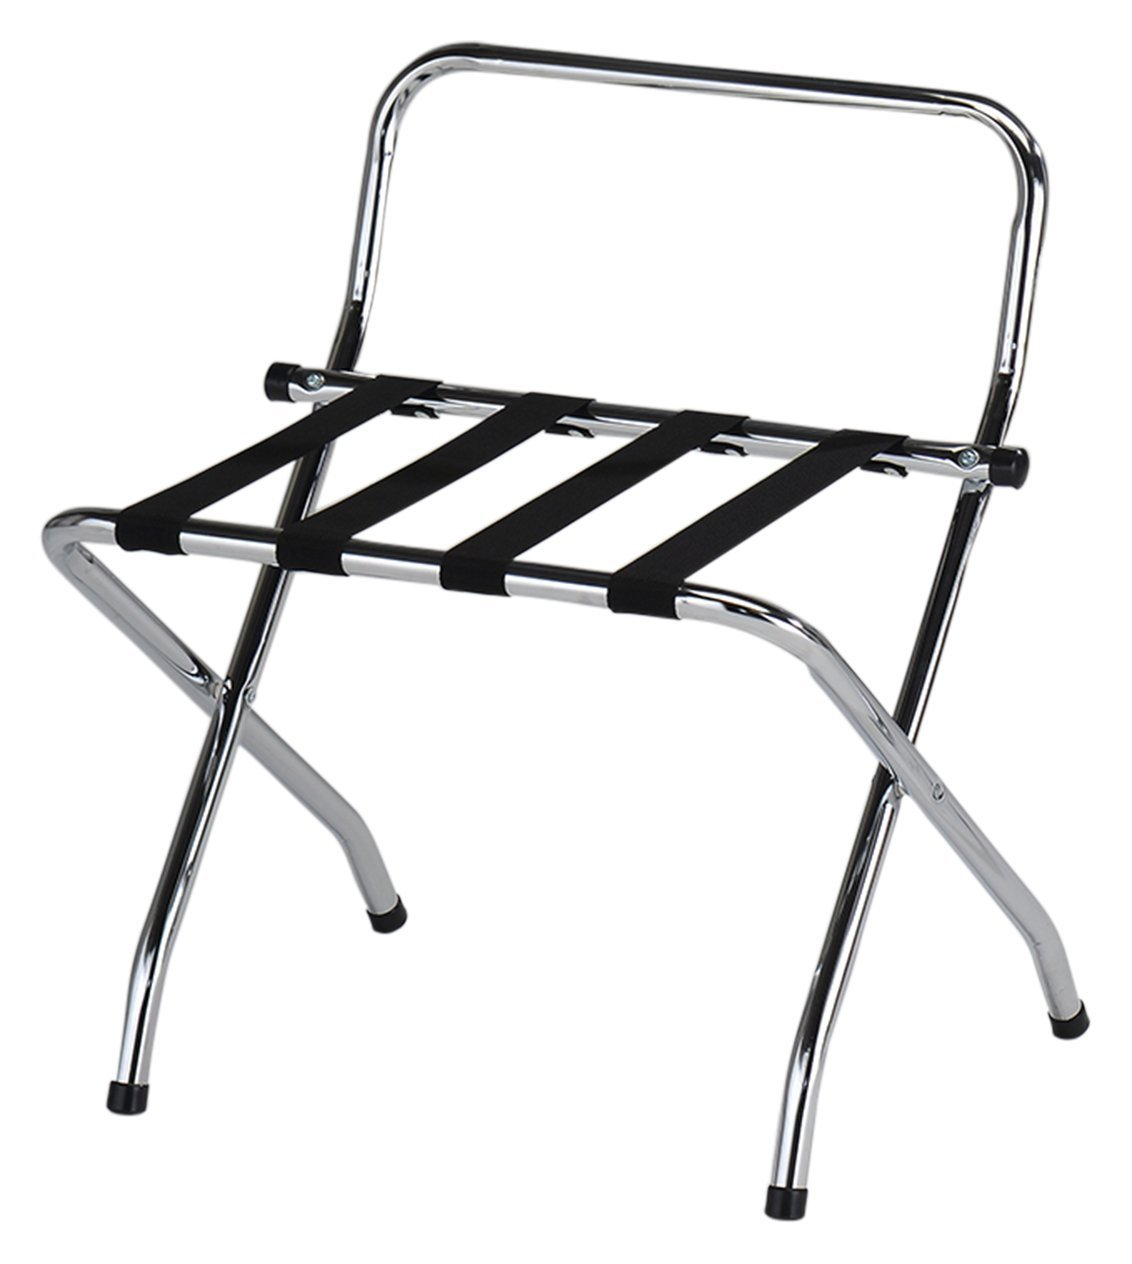 Kings Brand Furniture - Chrome / Black Metal Foldable High Back Luggage Rack